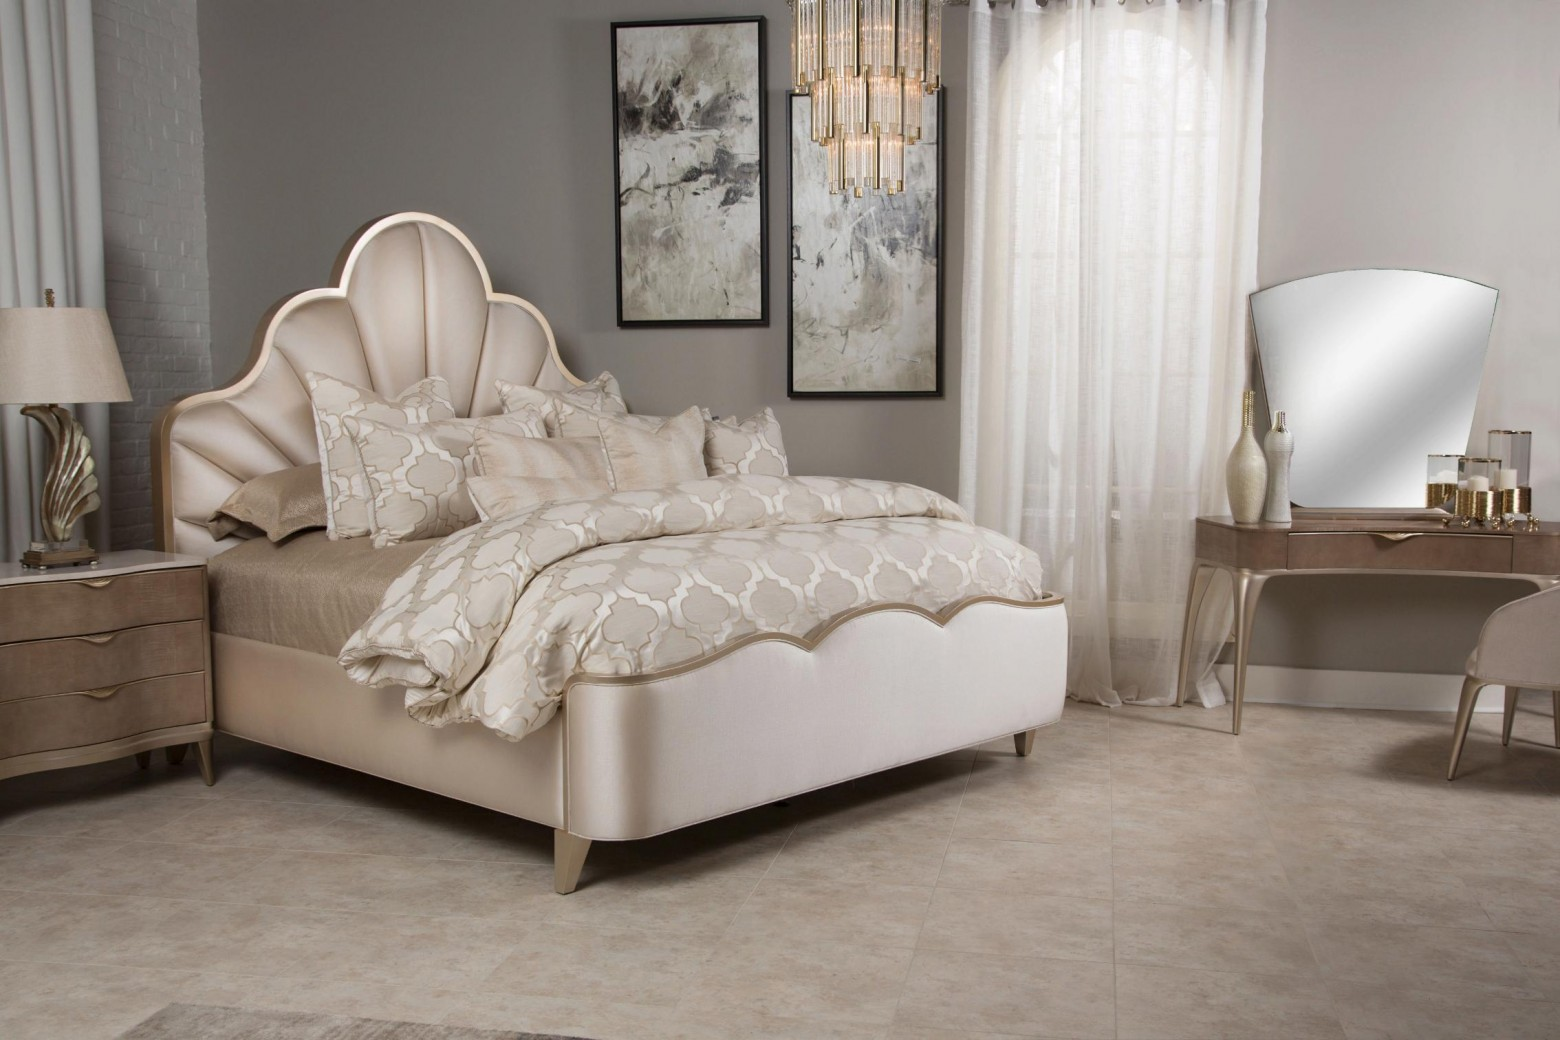 Malibu Crest Bedroom Set With Scalloped Bed By Michael Amini